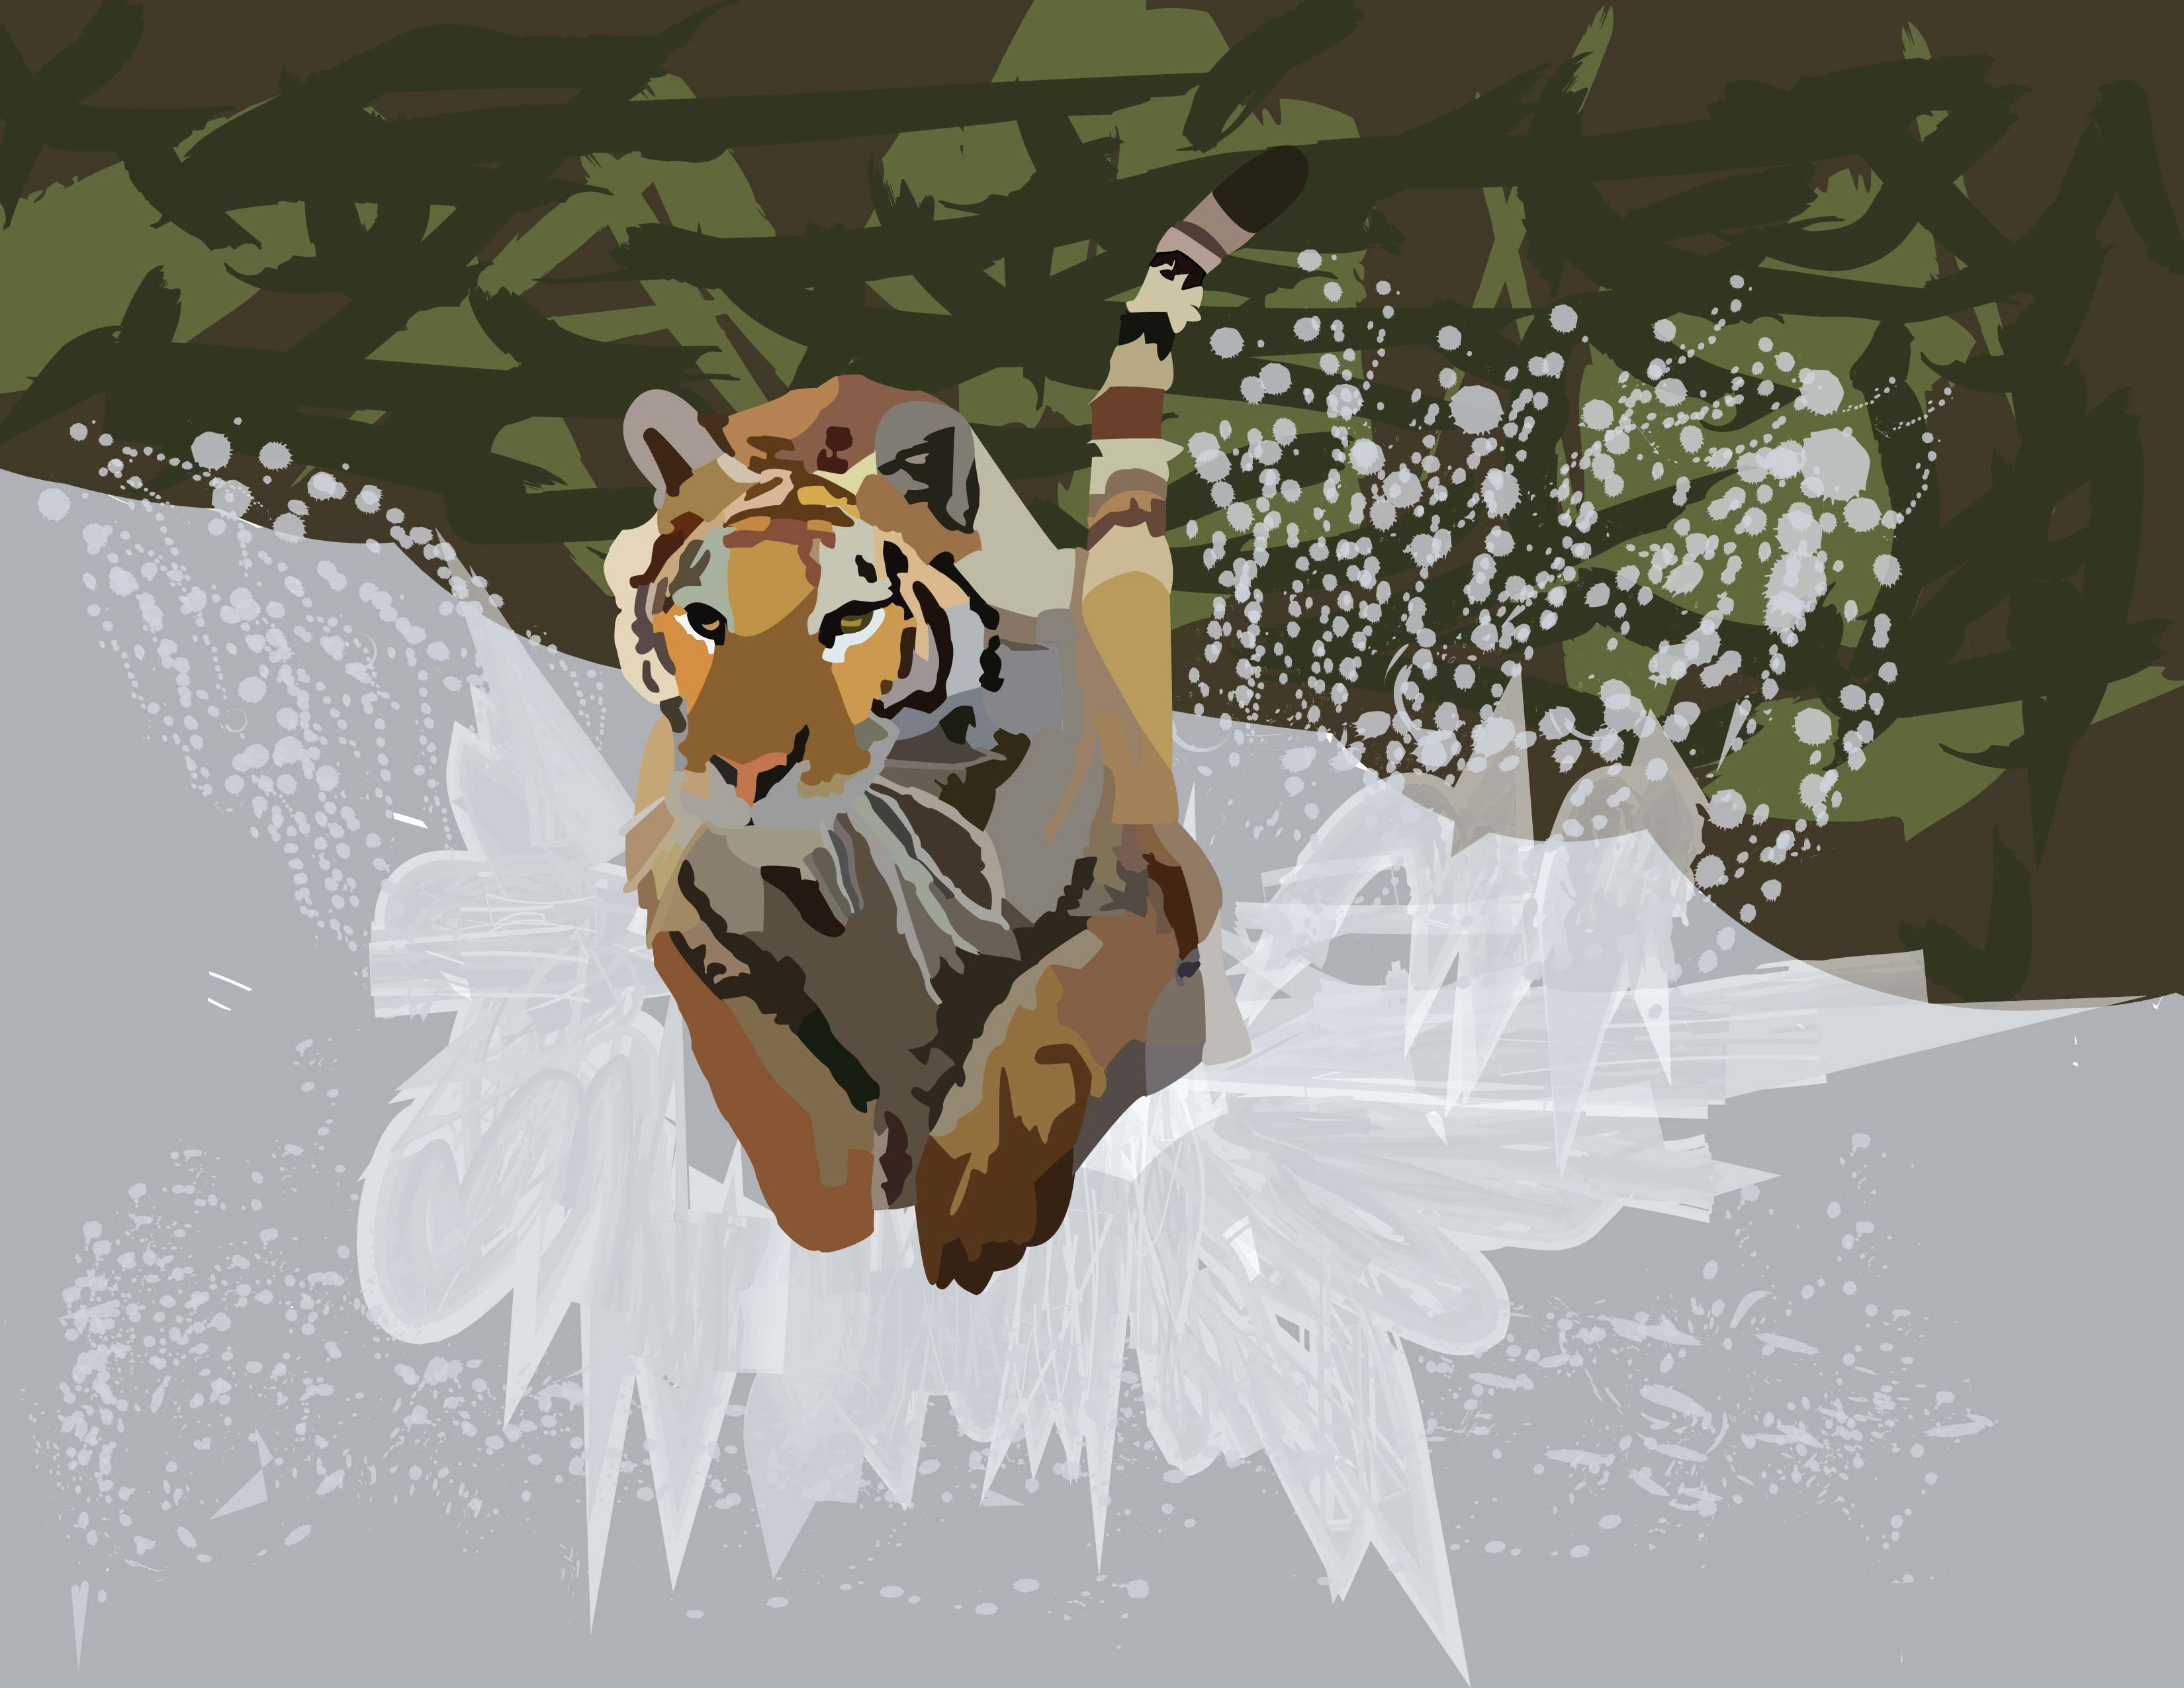 An illustration of a tiger in motion, running through water.